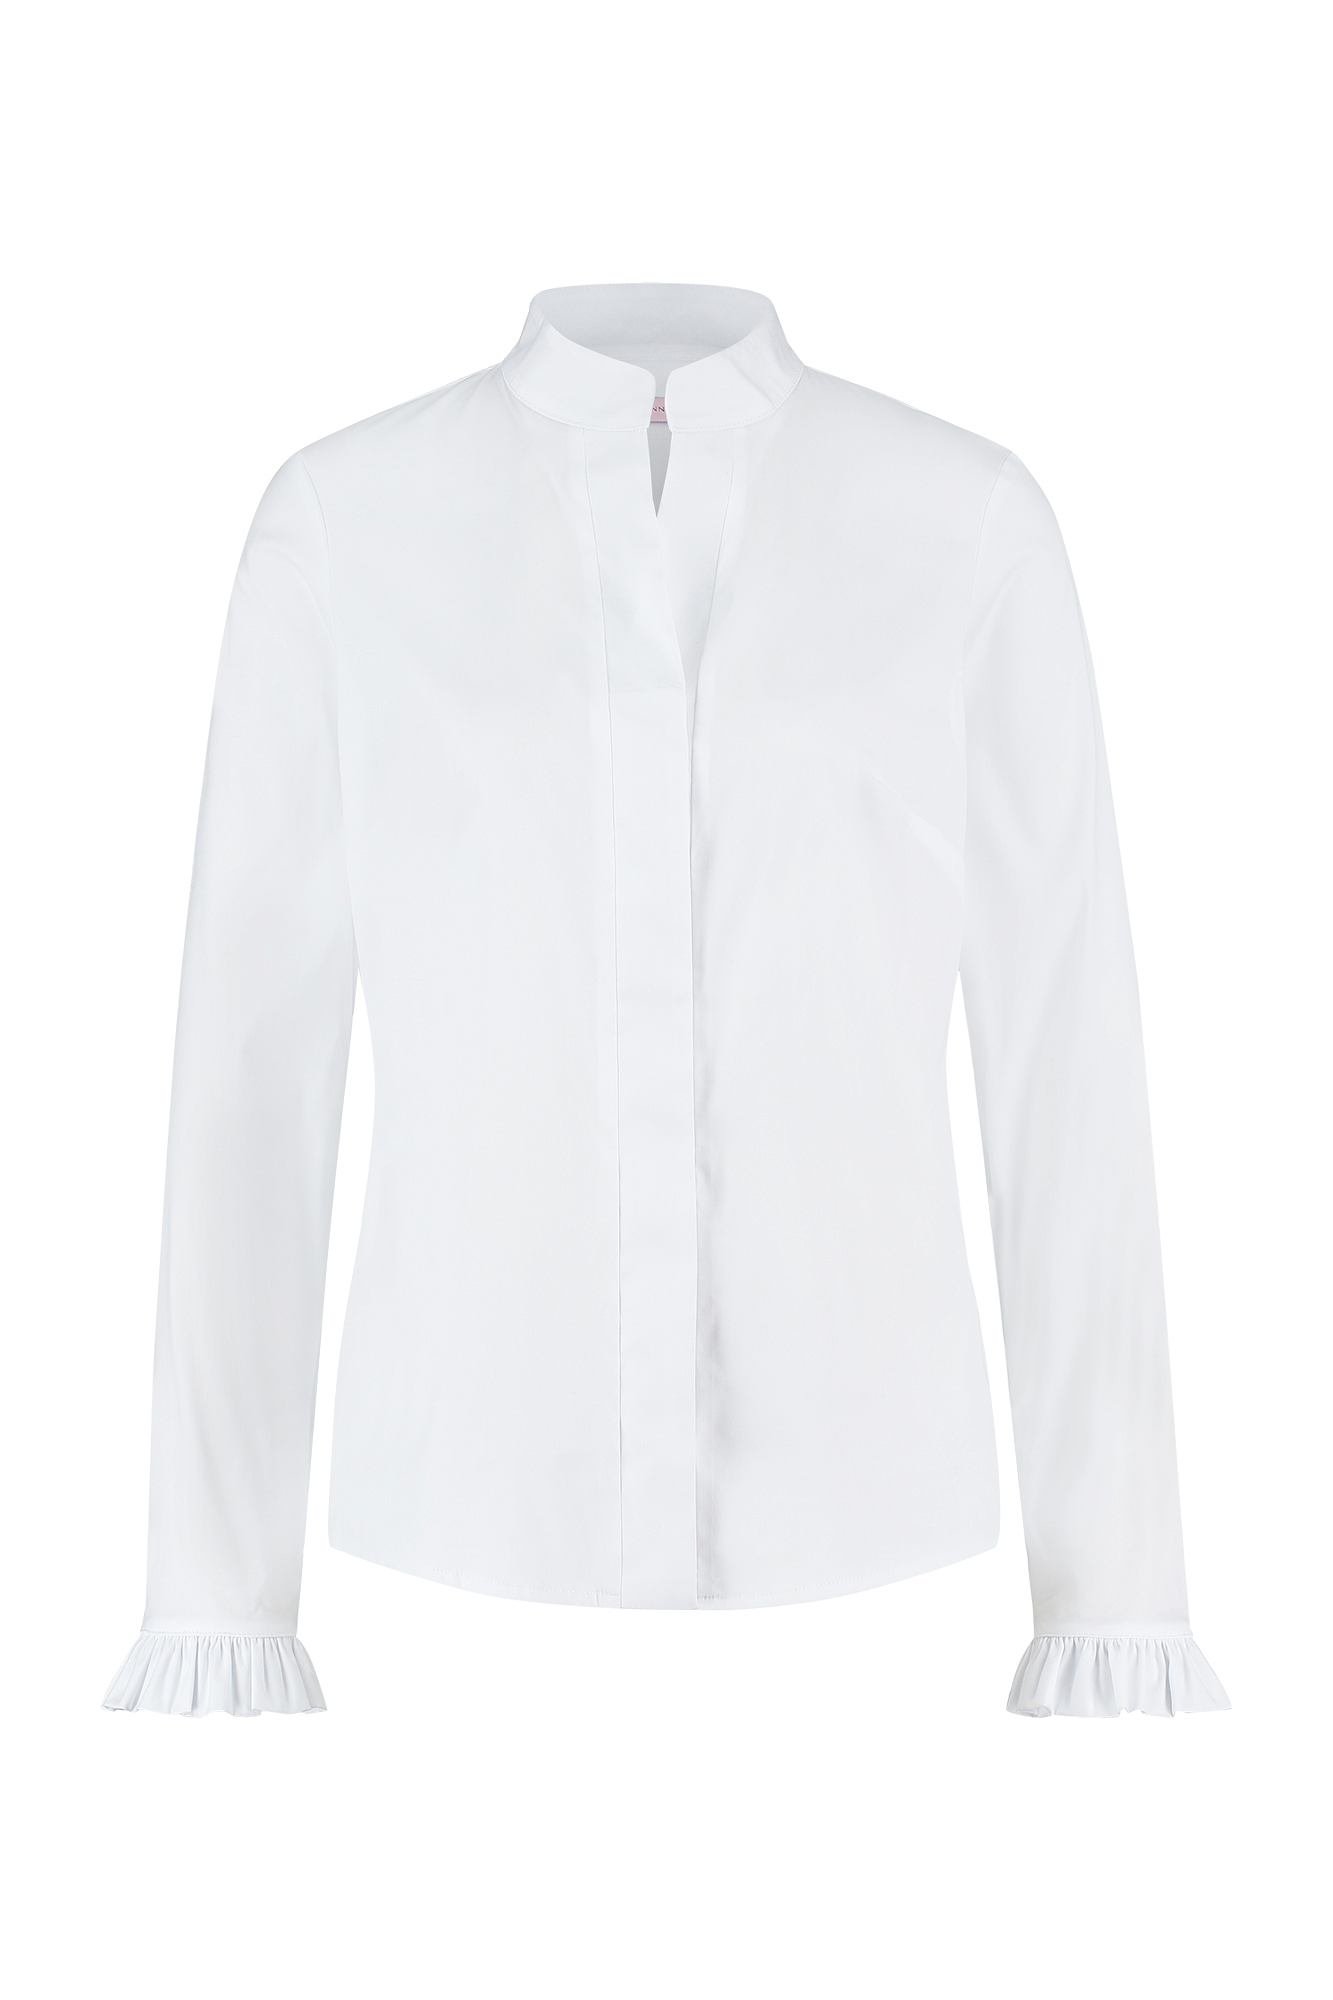 Moon poplin blouse